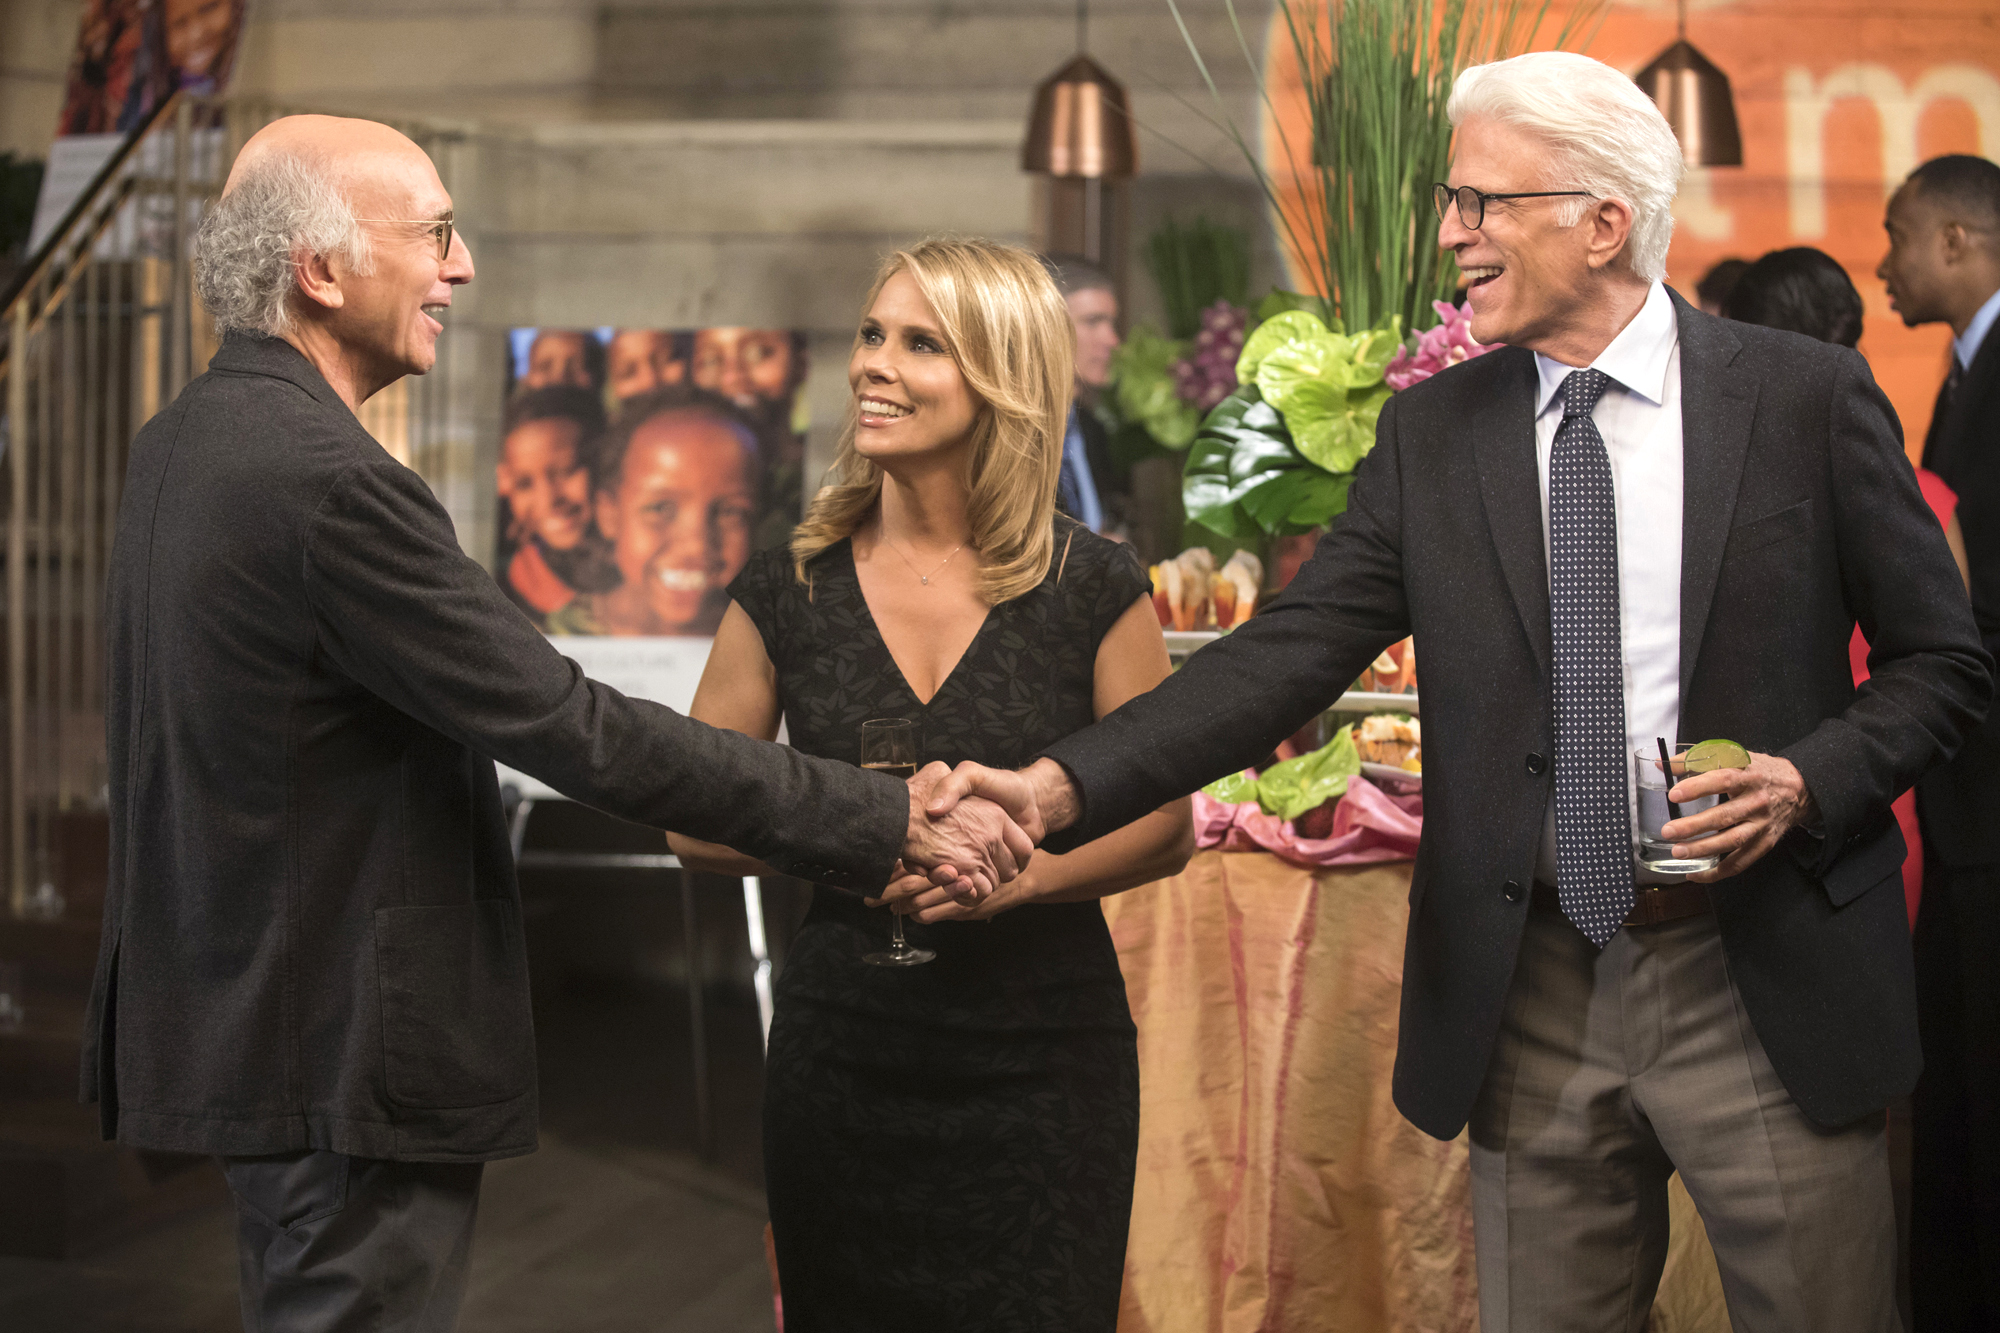 CURB YOUR ENTHUSIASML to R: Larry David, Cheryl Hines, Ted Danson